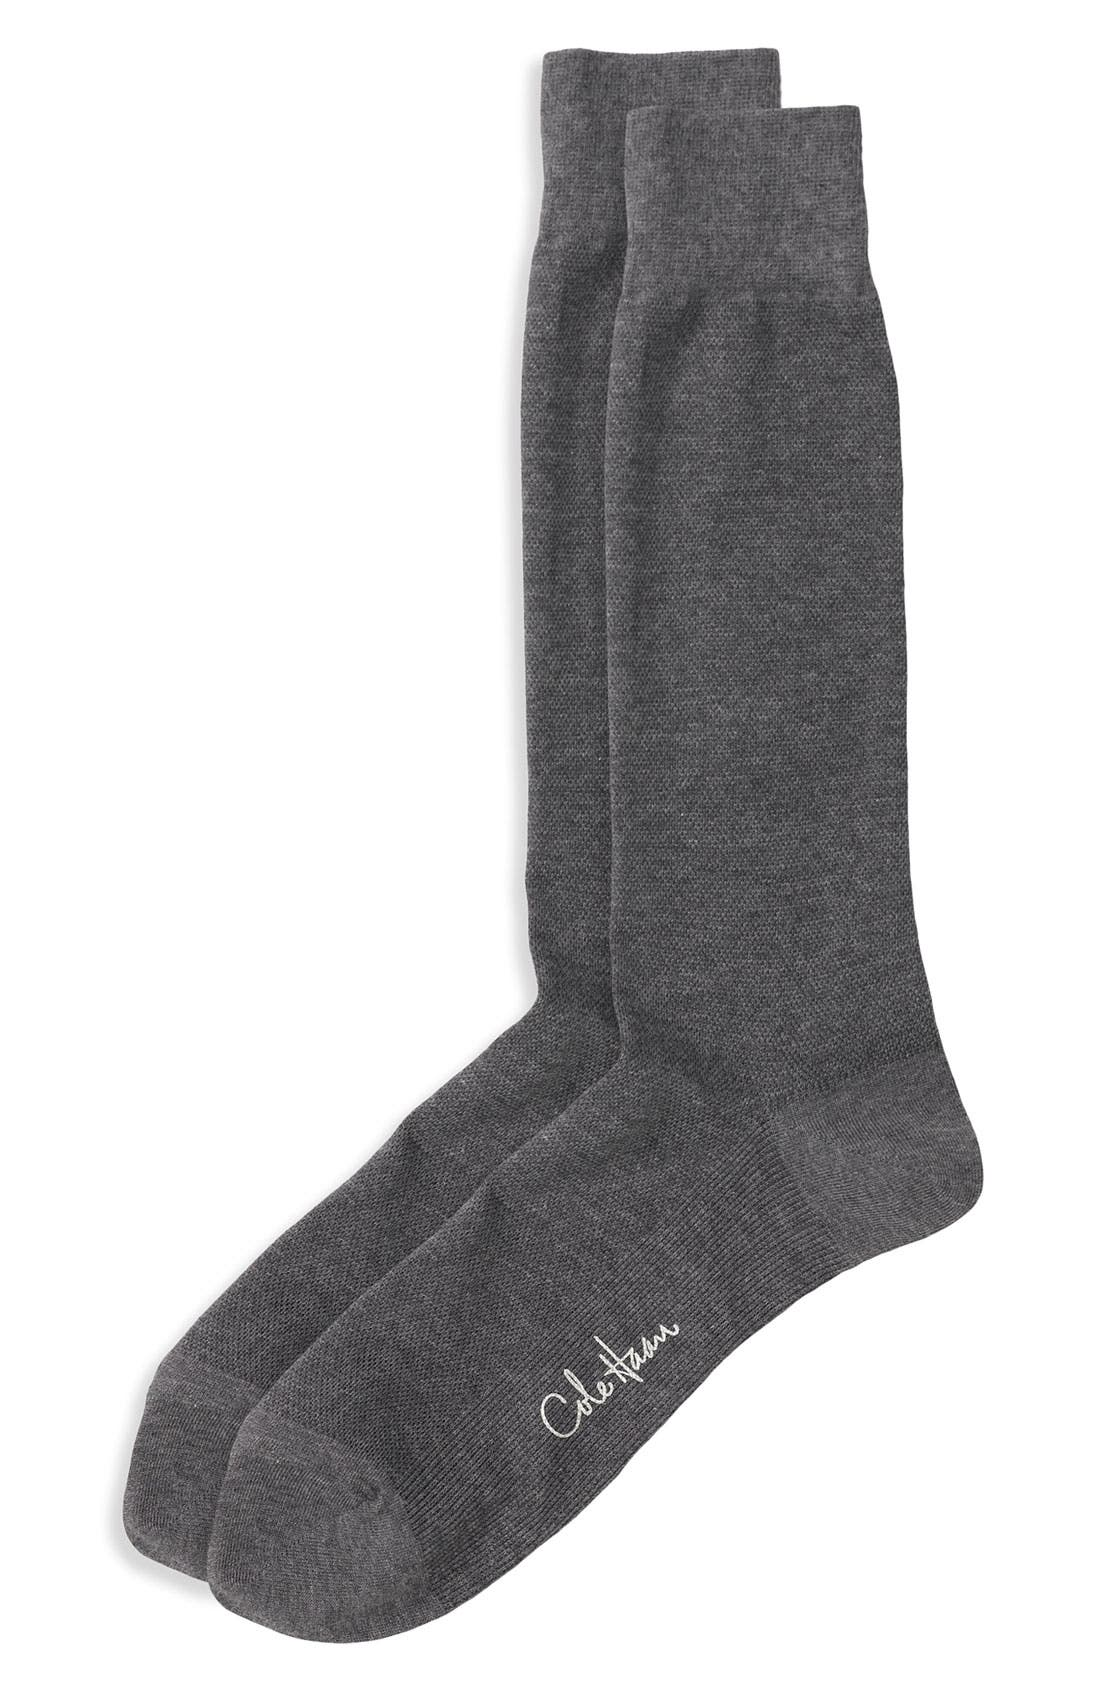 Main Image - Cole Haan Mid Calf Dress Socks